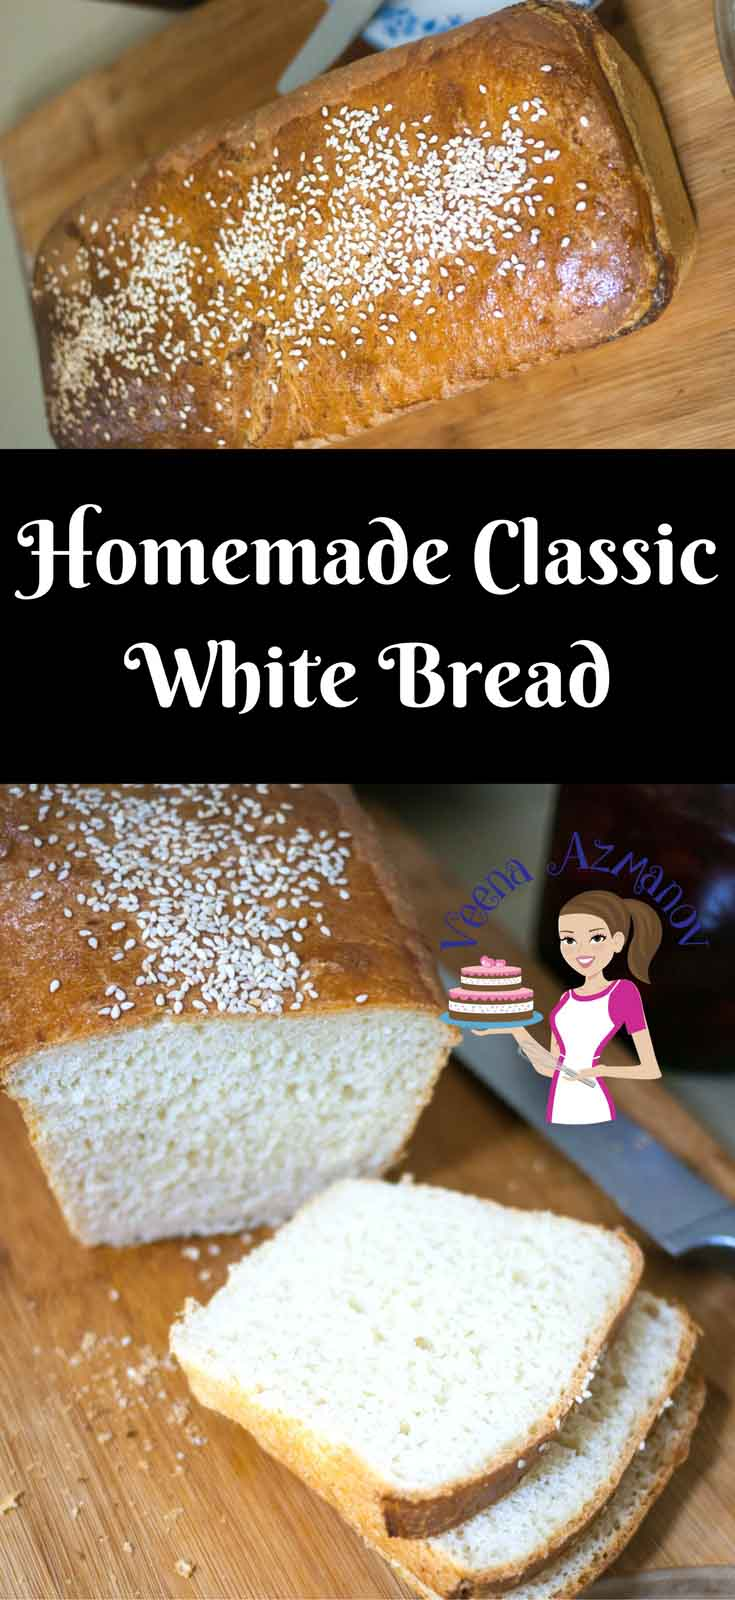 This Homemade classic white bread recipe is a simple and easy full proof recipe that will guarantee you a good loaf every single time. Light and airy, you can serve with butter, jam or with dinner. Perfect for sandwiches. Use left over for delicious French toast.